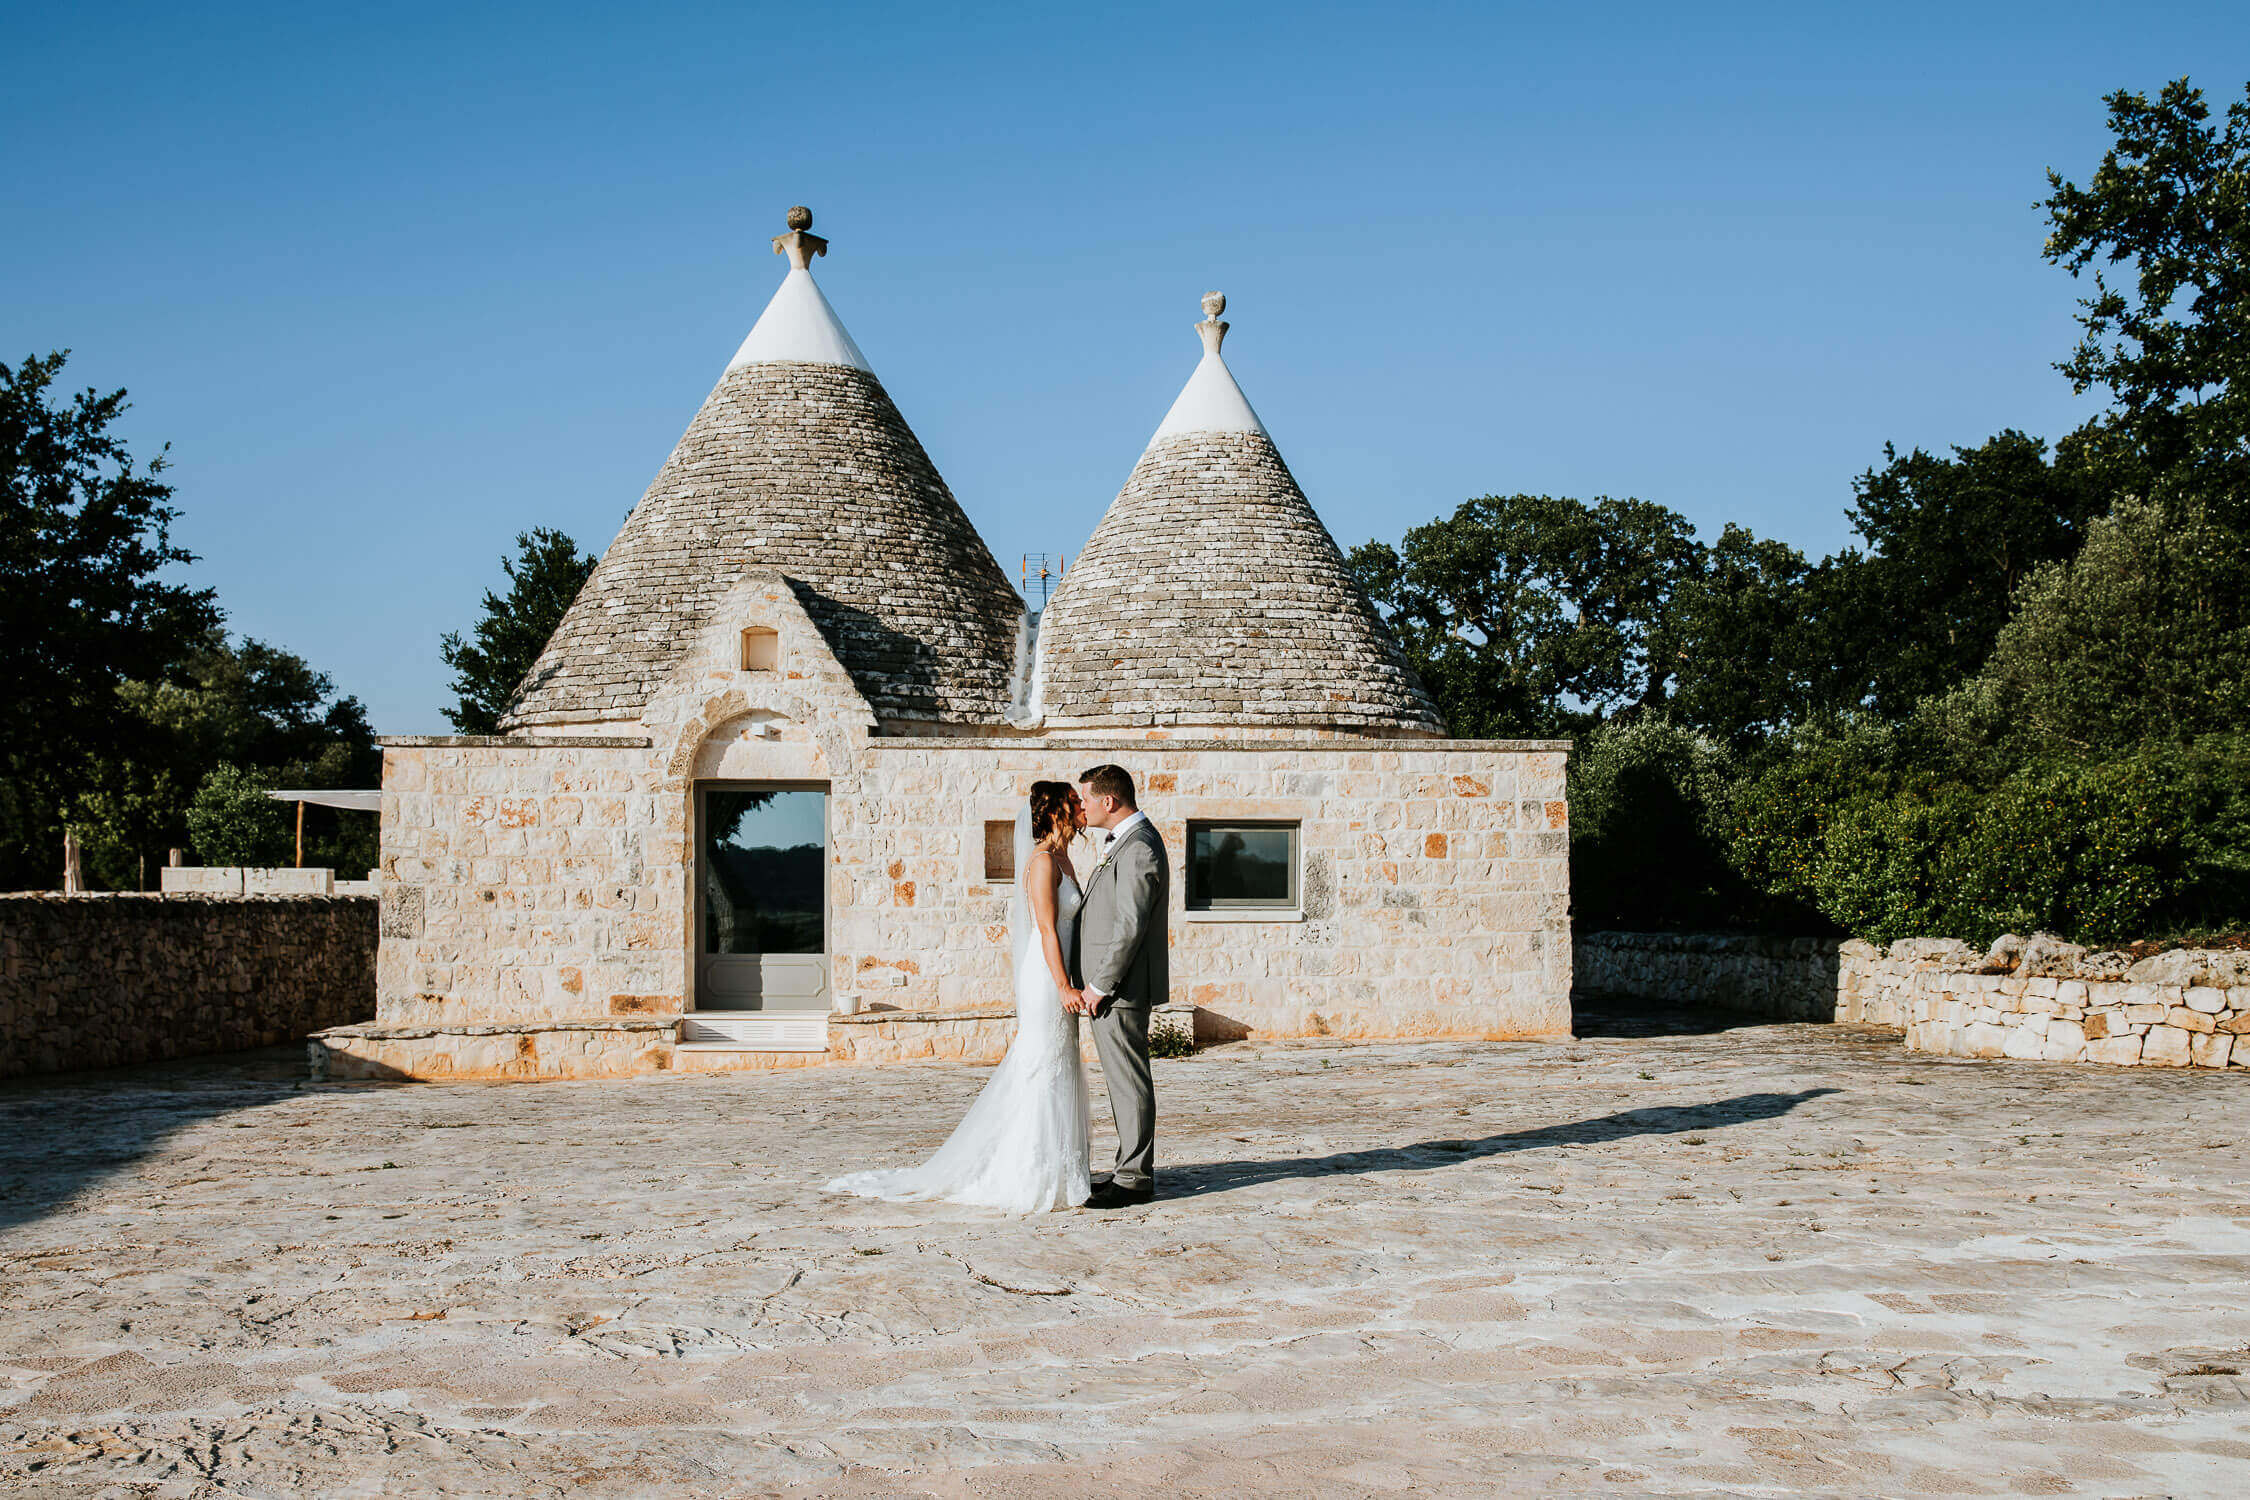 wedding photographer puglia, masseria wedding puglia, reportage wedding puglia